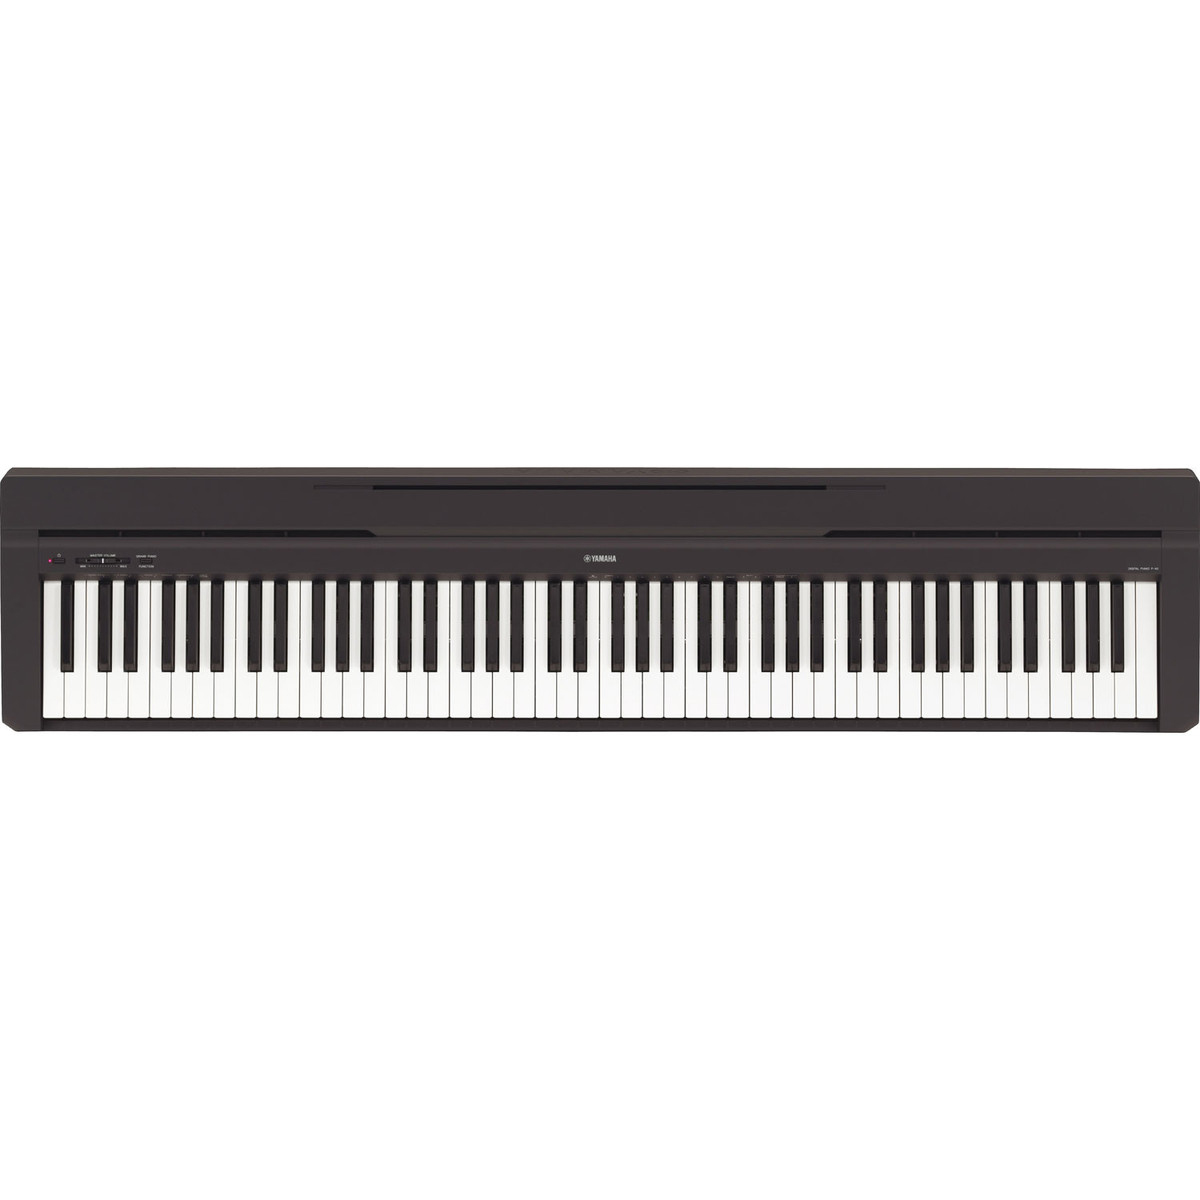 musicworks digital pianos stage pianos stage piano yamaha p45 digital stage piano 88 note. Black Bedroom Furniture Sets. Home Design Ideas